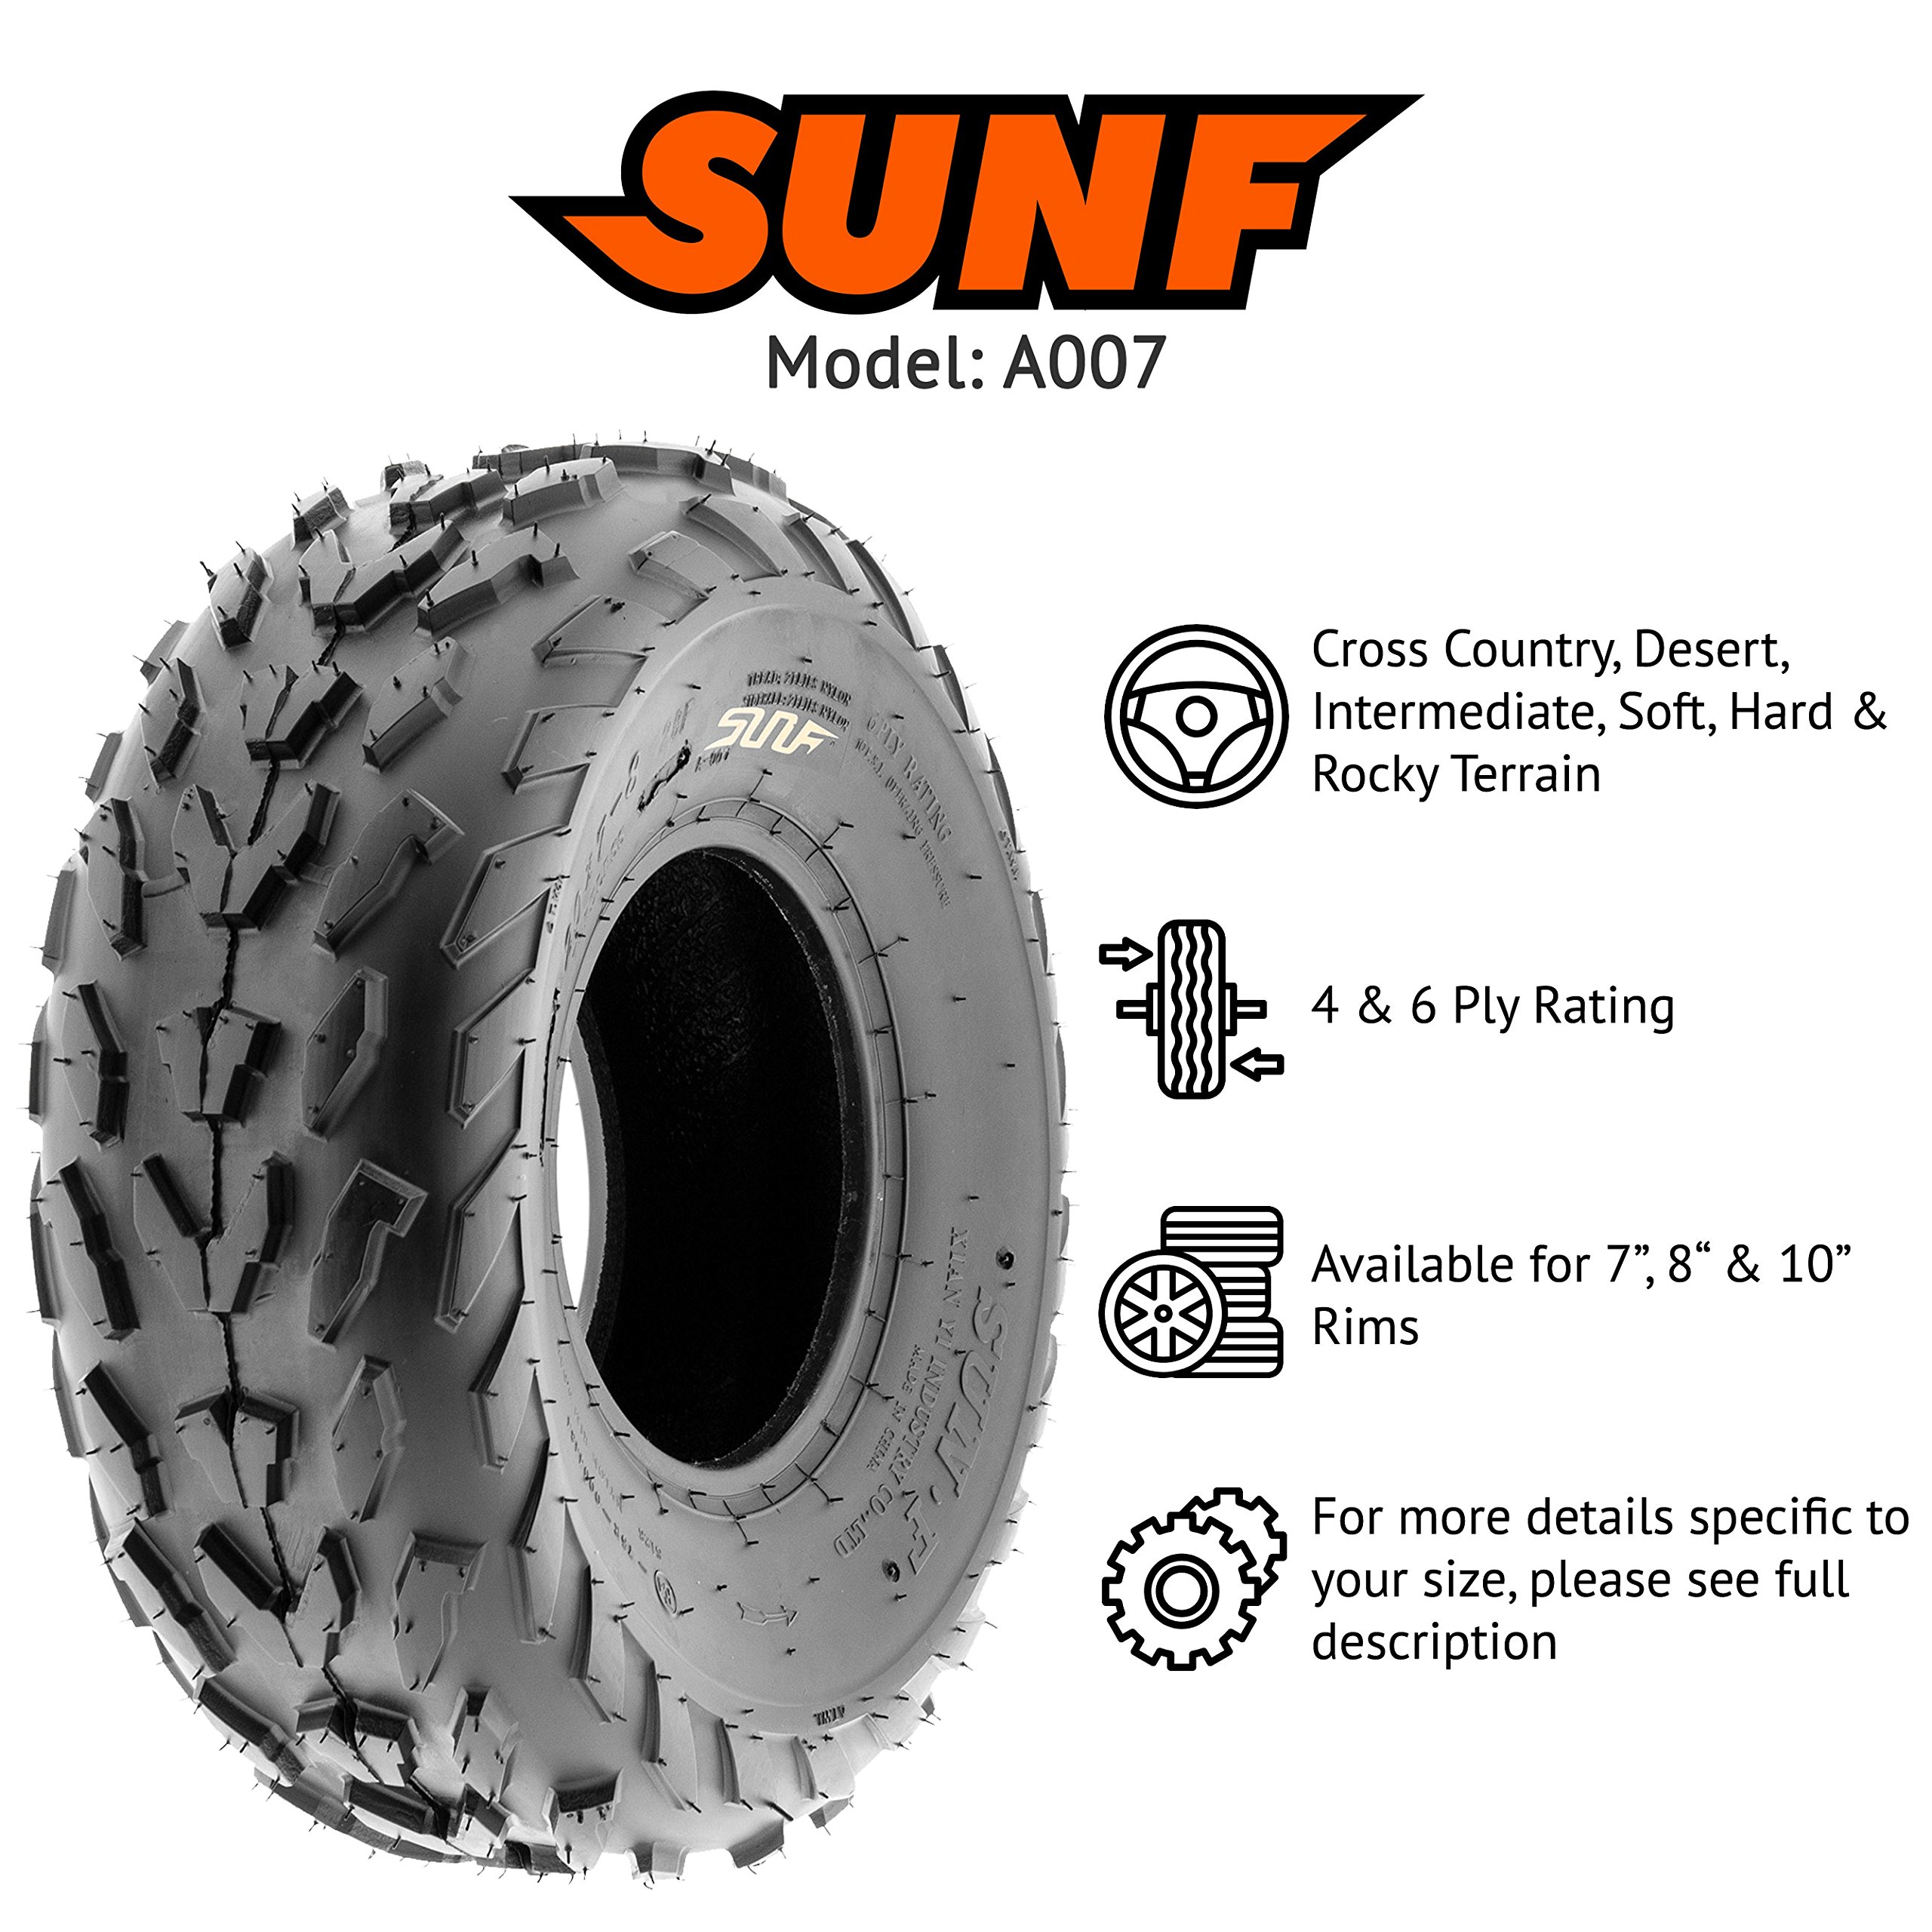 SunF 20x7-8 20x7x8 ATV UTV A/T Quad Race Replacement 6 PR Tubeless Tires A007, [Set of 2] by SunF (Image #2)